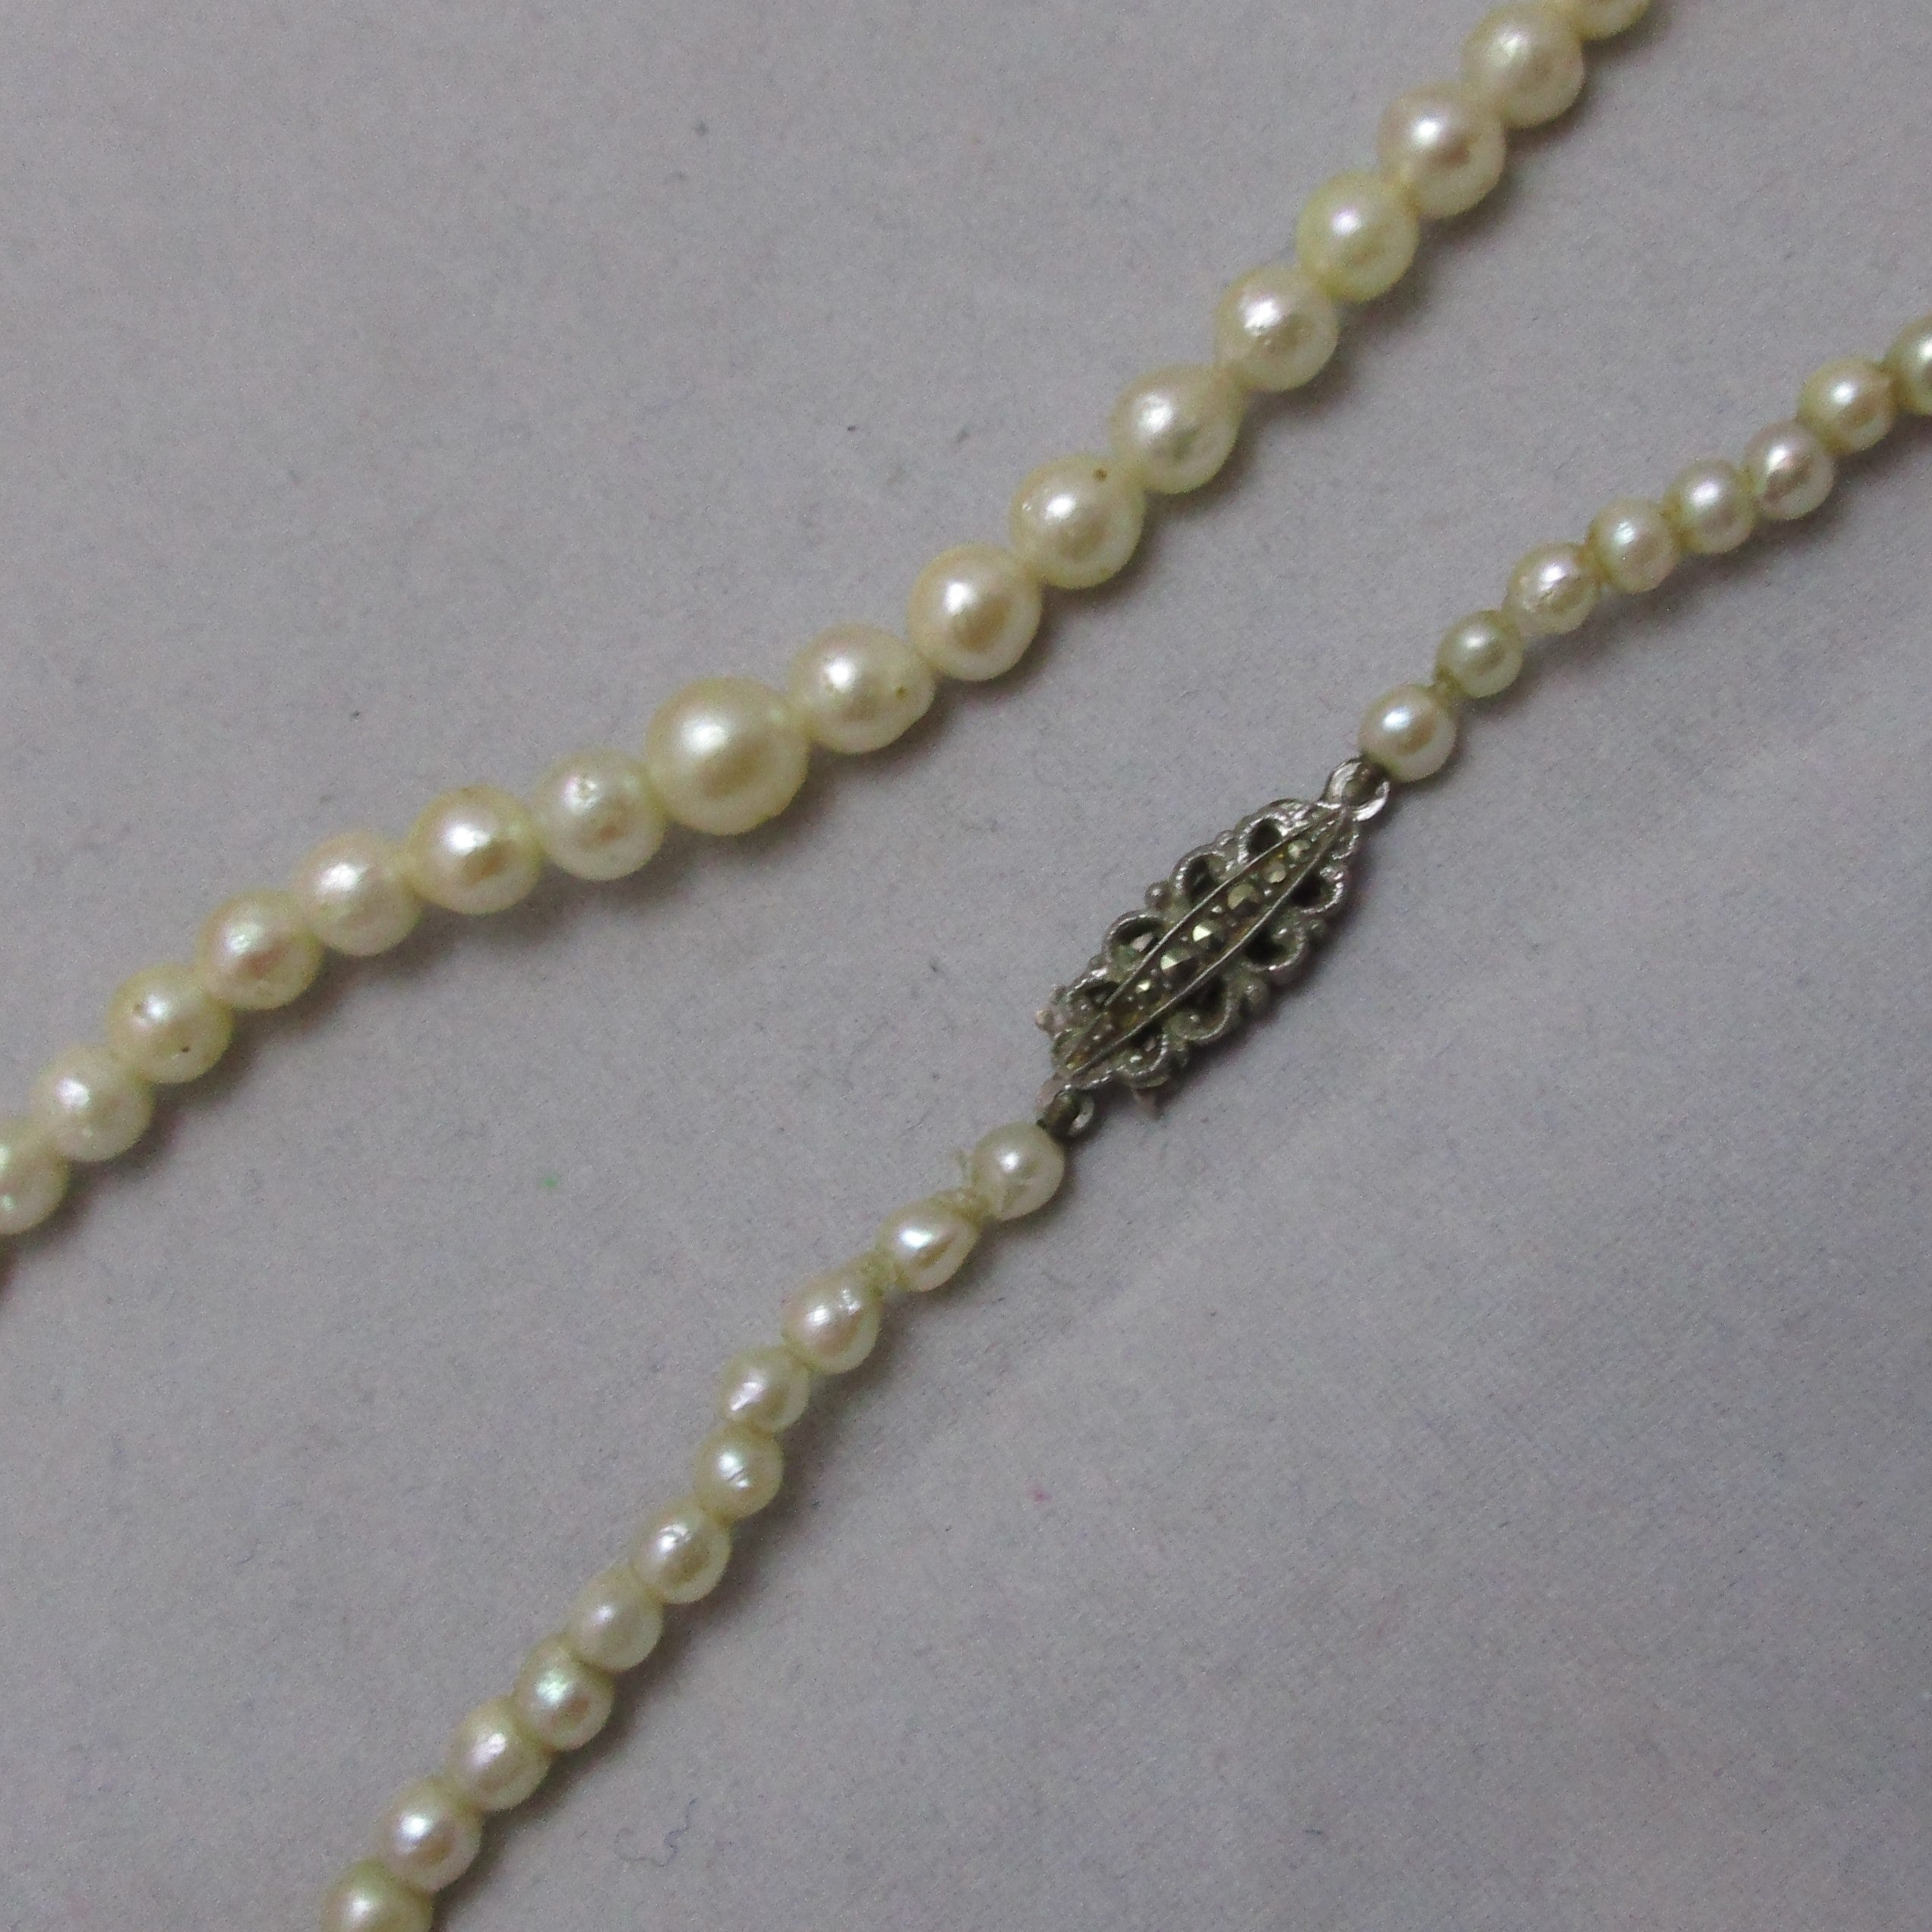 15700e78862dd Cultured Pearl Necklace With Silver Marcasite Clasp Vintage Art Deco c1930.